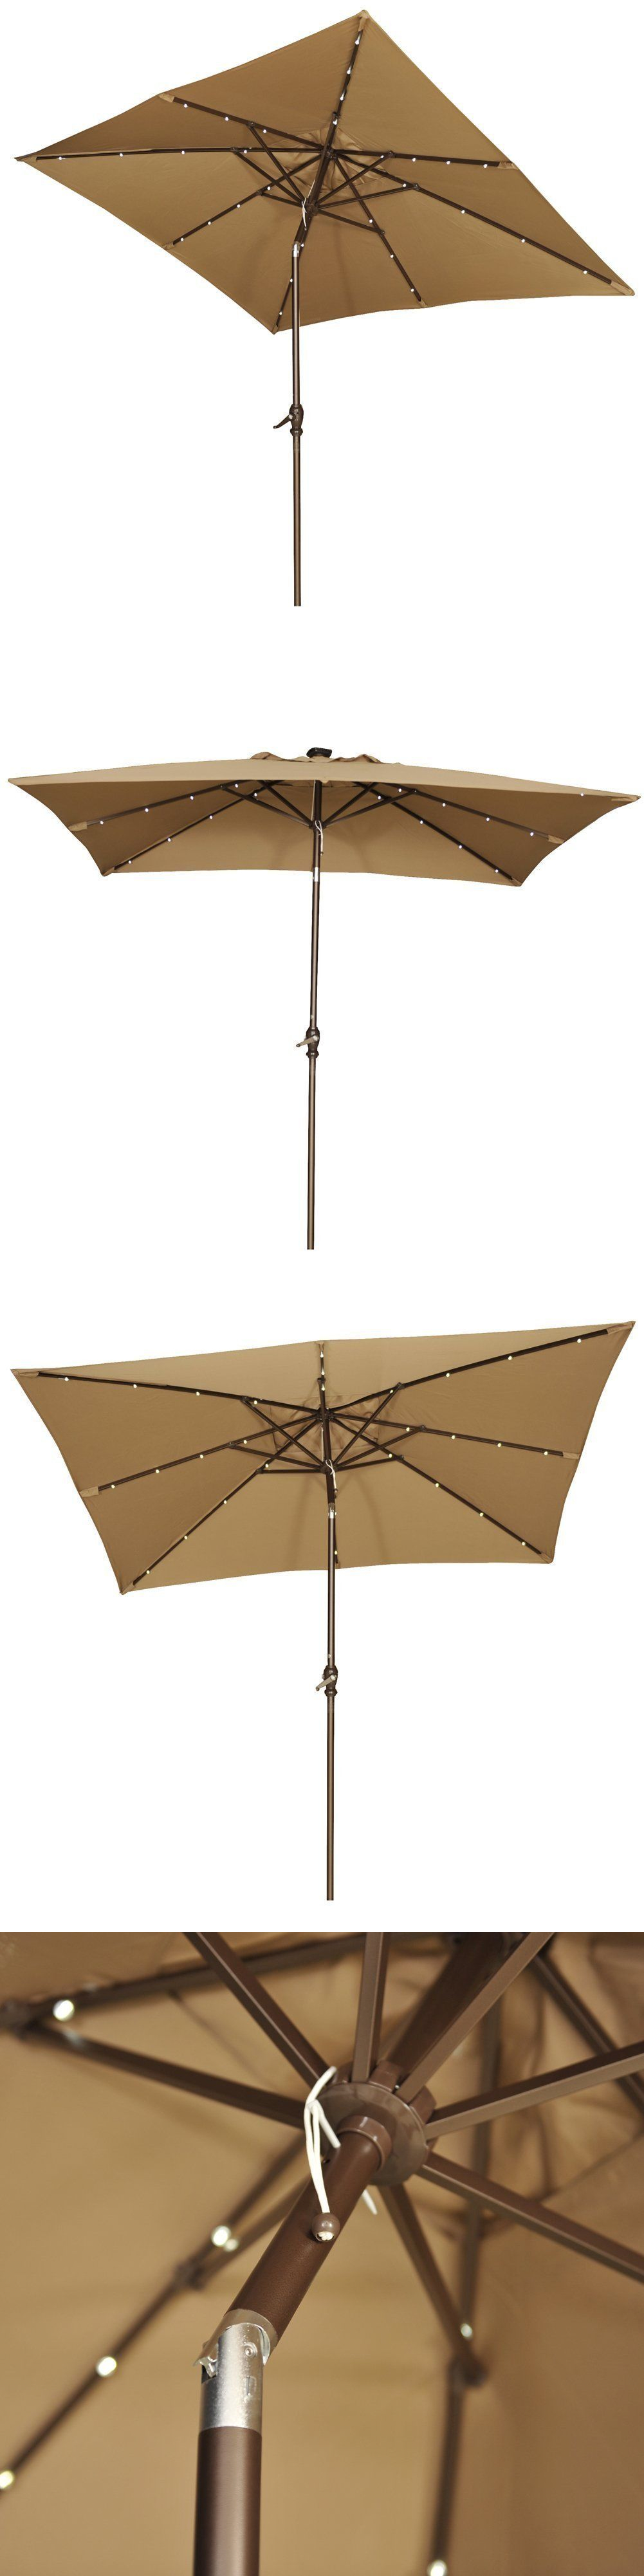 Rectangular Patio Umbrella With Solar Lights Enchanting Umbrellas 180998 7X9 Ft Rectangular Patio Umbrella W Solar Powered Inspiration Design